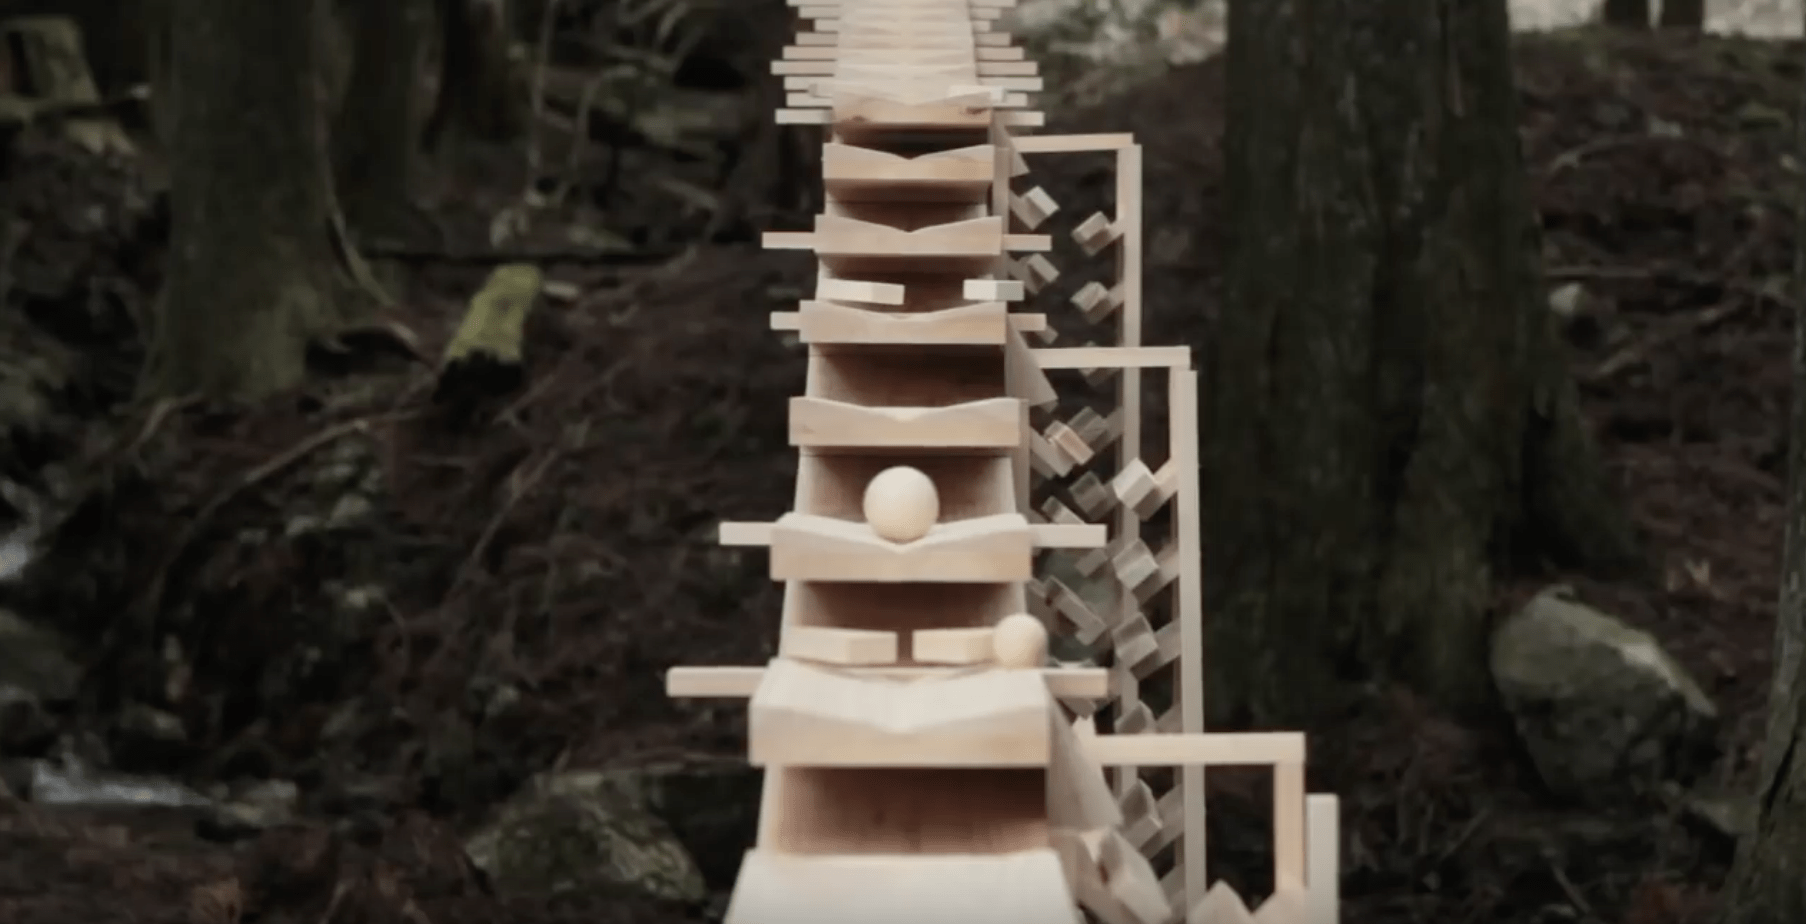 Made in Japan: Witness the World's Most Mesmerizing Gravity-Powered Sound Machine